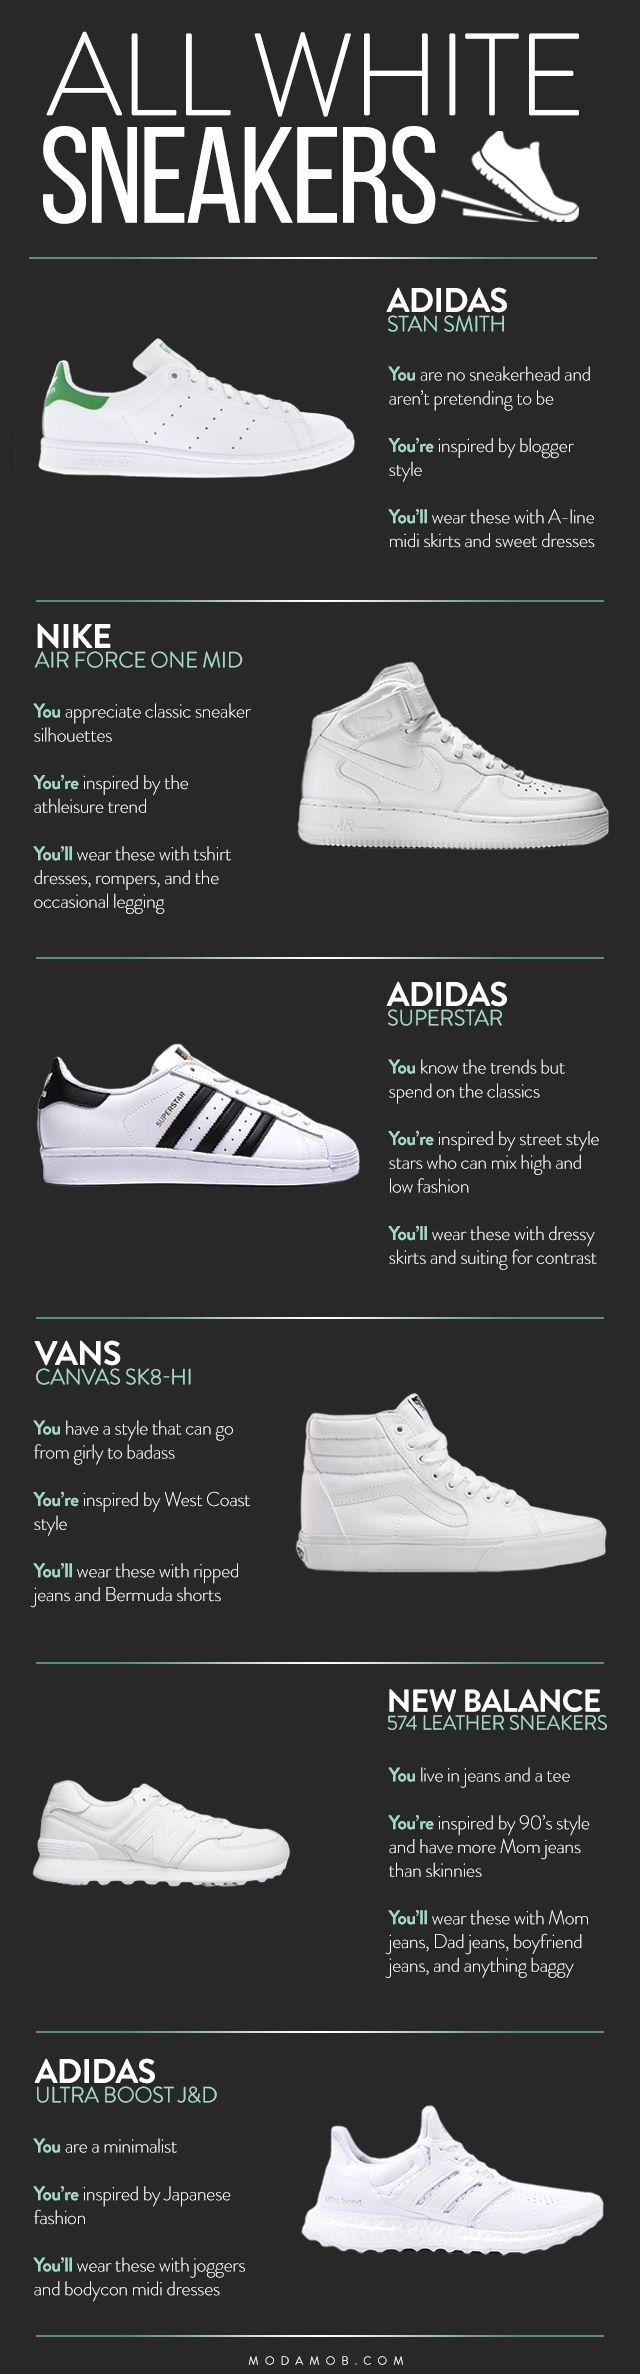 Which All White Sneaker Matches Your Personal Style | Adidas Stan Smith, Nike Airforce One, Adidas Superstar, Vans Canvas SK8, New Balance